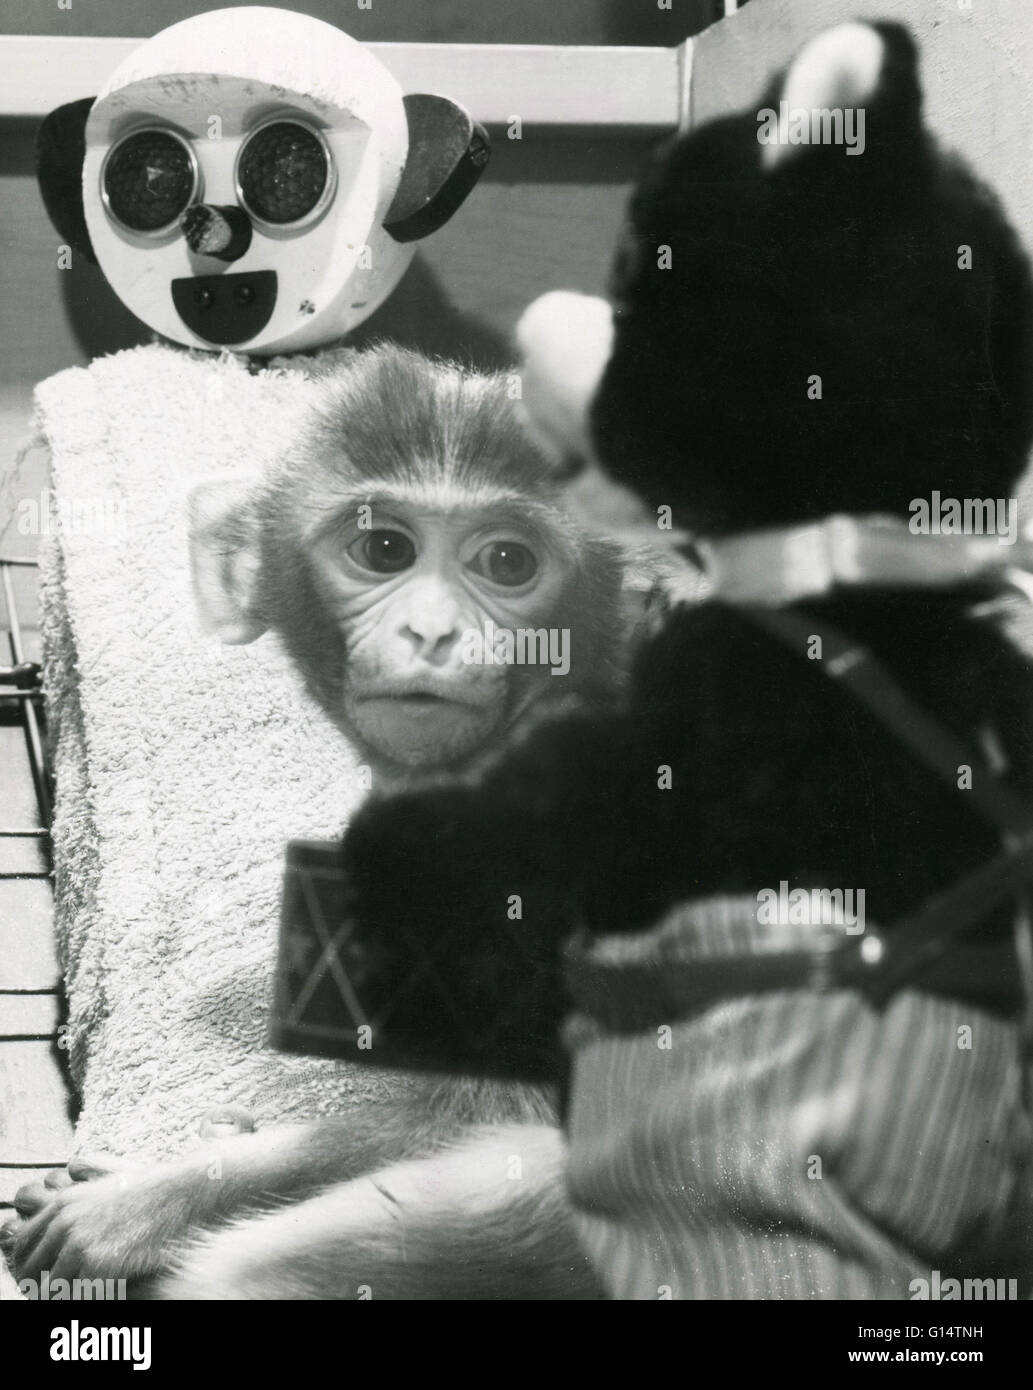 An infant Rhesus monkey (Macaca mulatta) with its cloth surrogate mother and a teddy bear during an animal experiment. - Stock Image